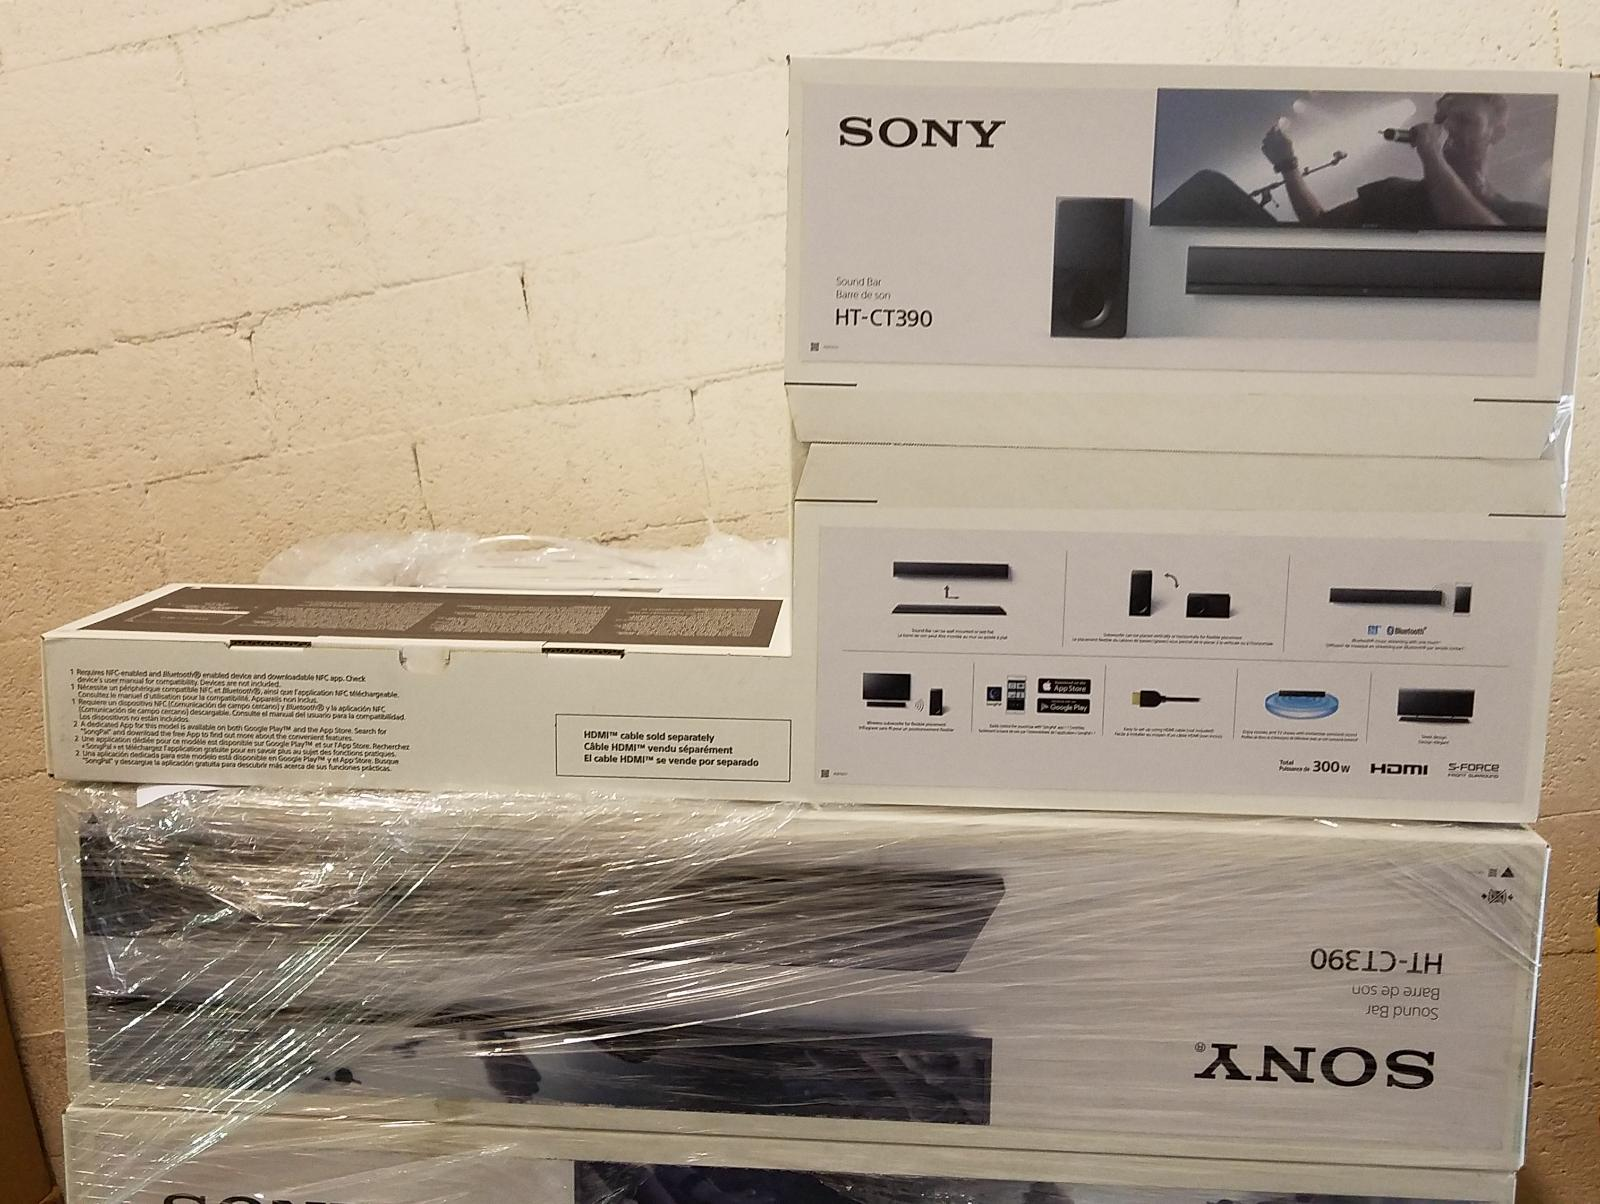 🔊SONY HT-CT390 SOUNDBARS READY STOCK MIAMI🔊 CALL OR MESSAGE FOR BEST PRICING!!